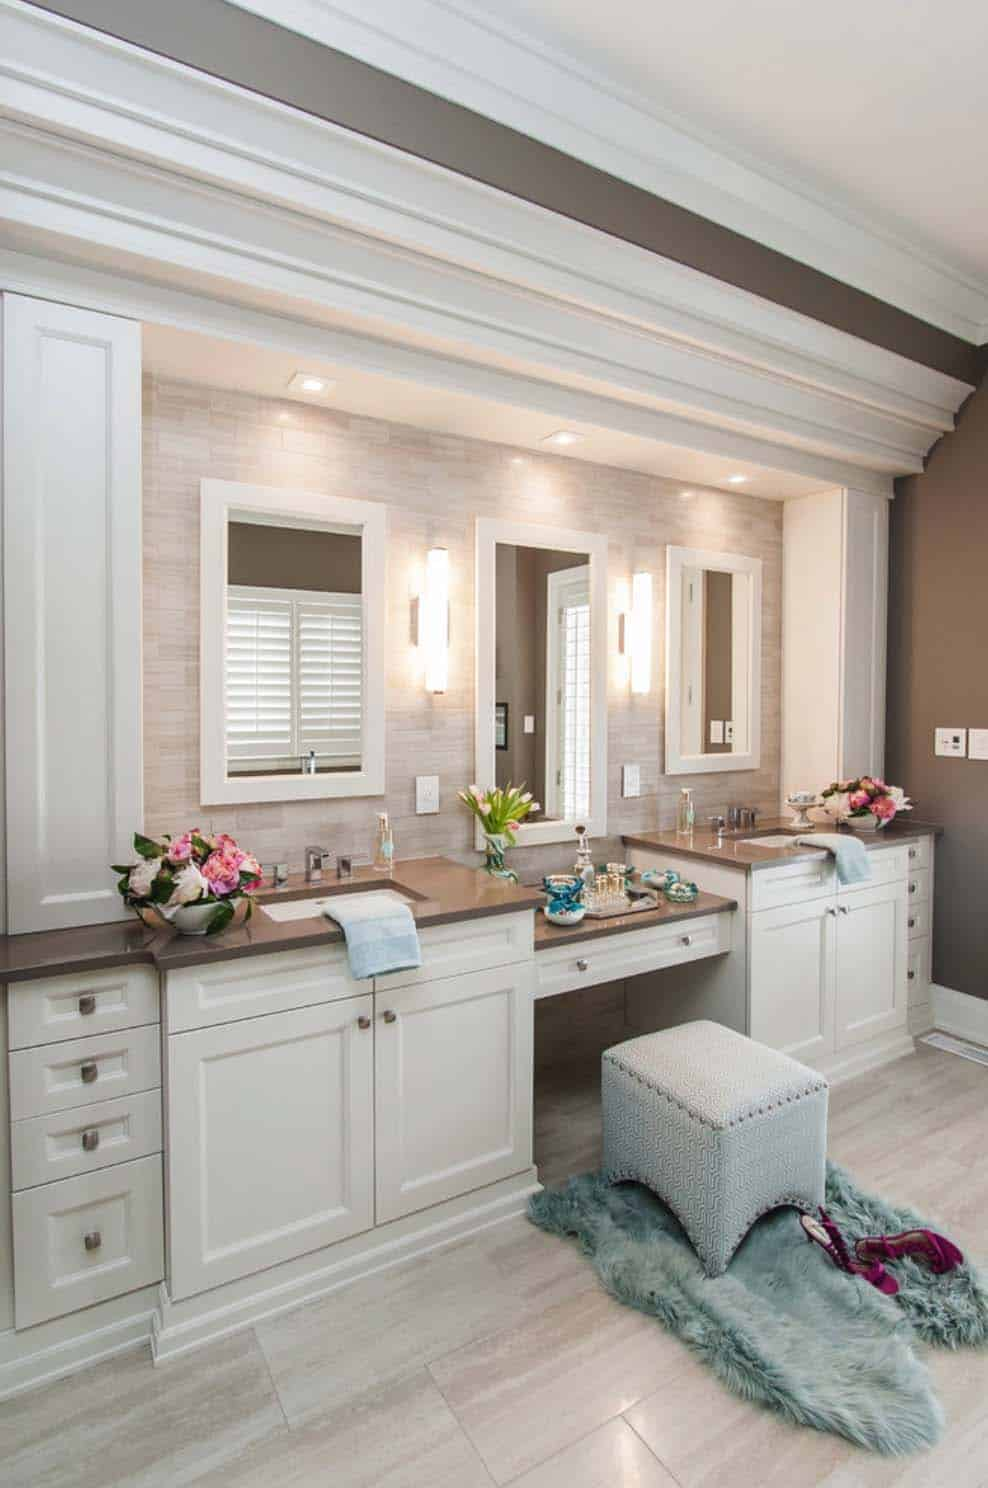 Houzz Bathroom Design 53 Most Fabulous Traditional Style Bathroom Designs.  Houzz Bathroom Design   53 Most Fabulous Traditional Style Bathroom Designs  .